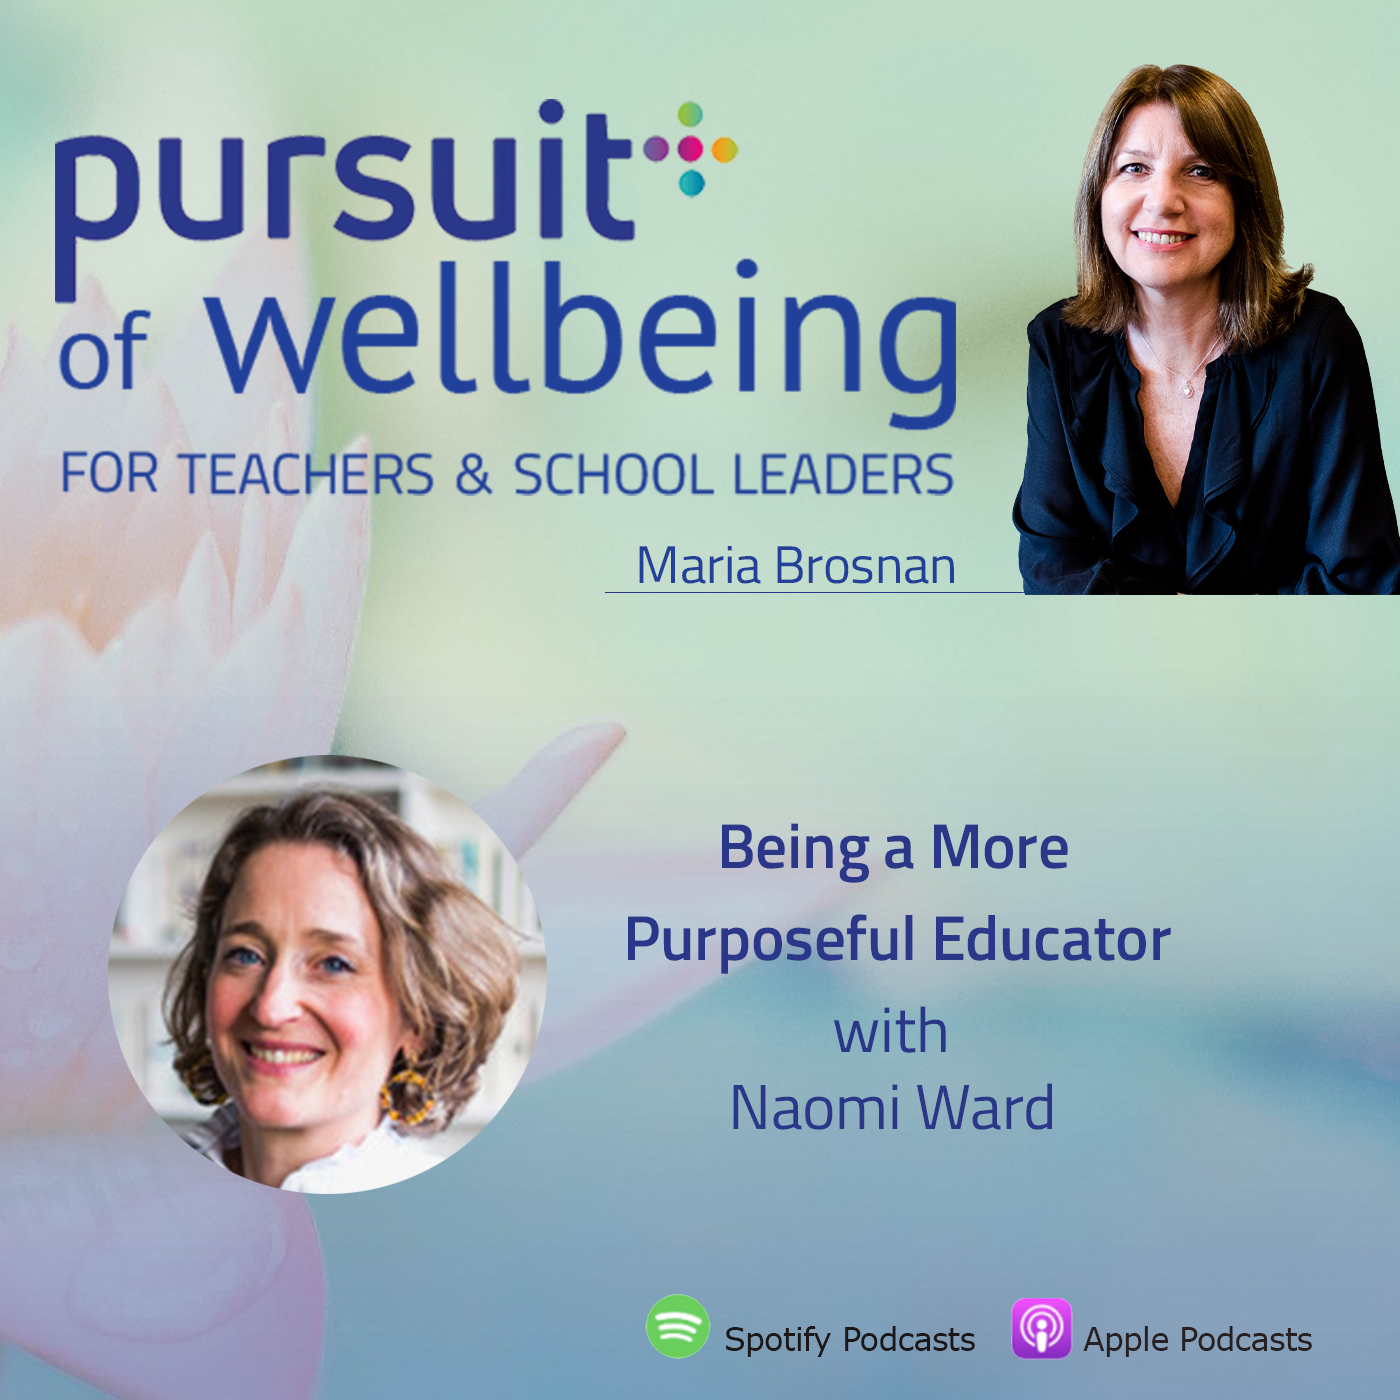 Being a More Purposeful Educator with Naomi Ward